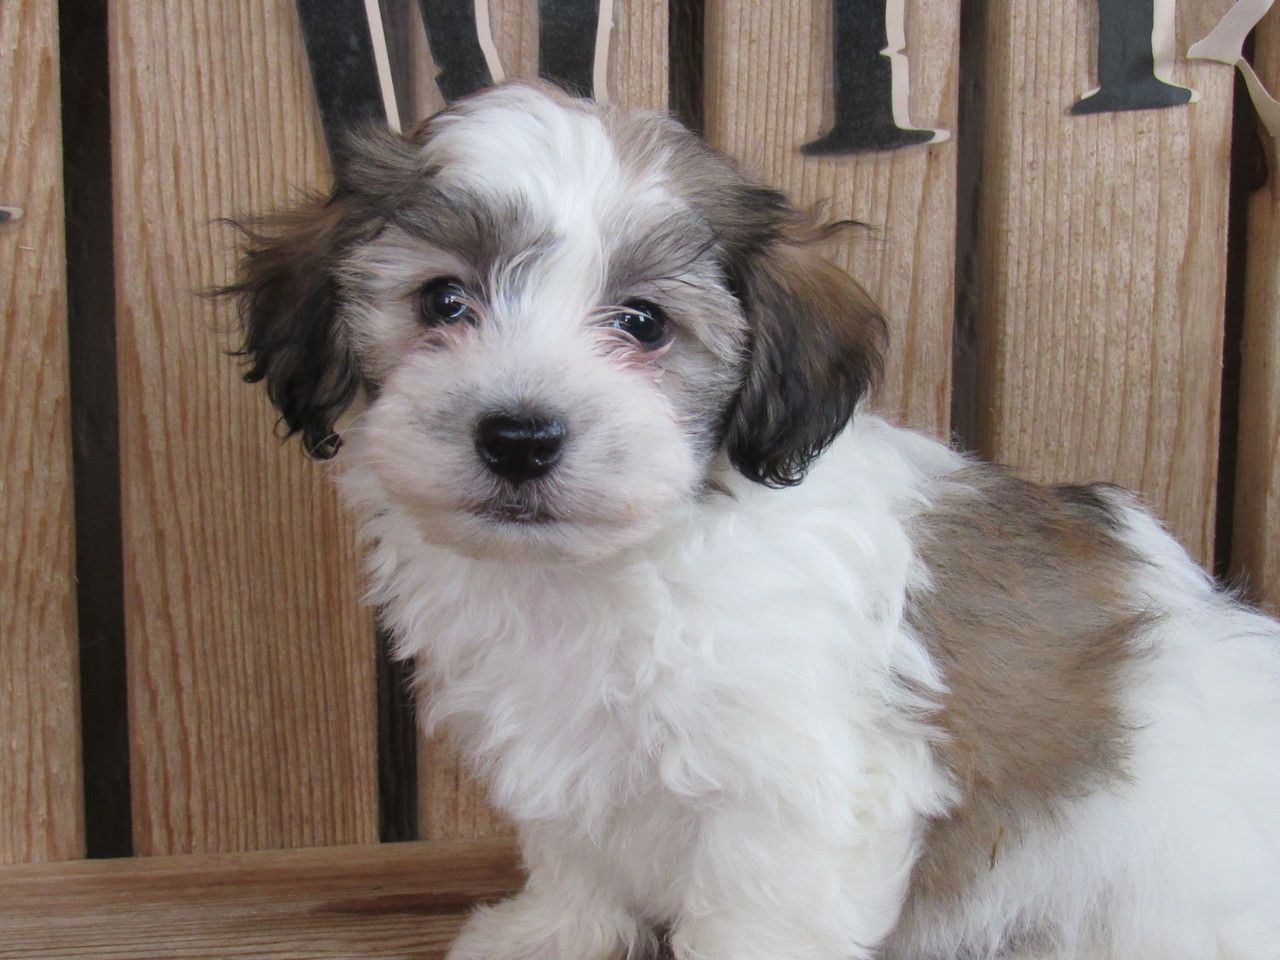 AKC Havanese puppy Caleb Kate's Puppies in Ohio